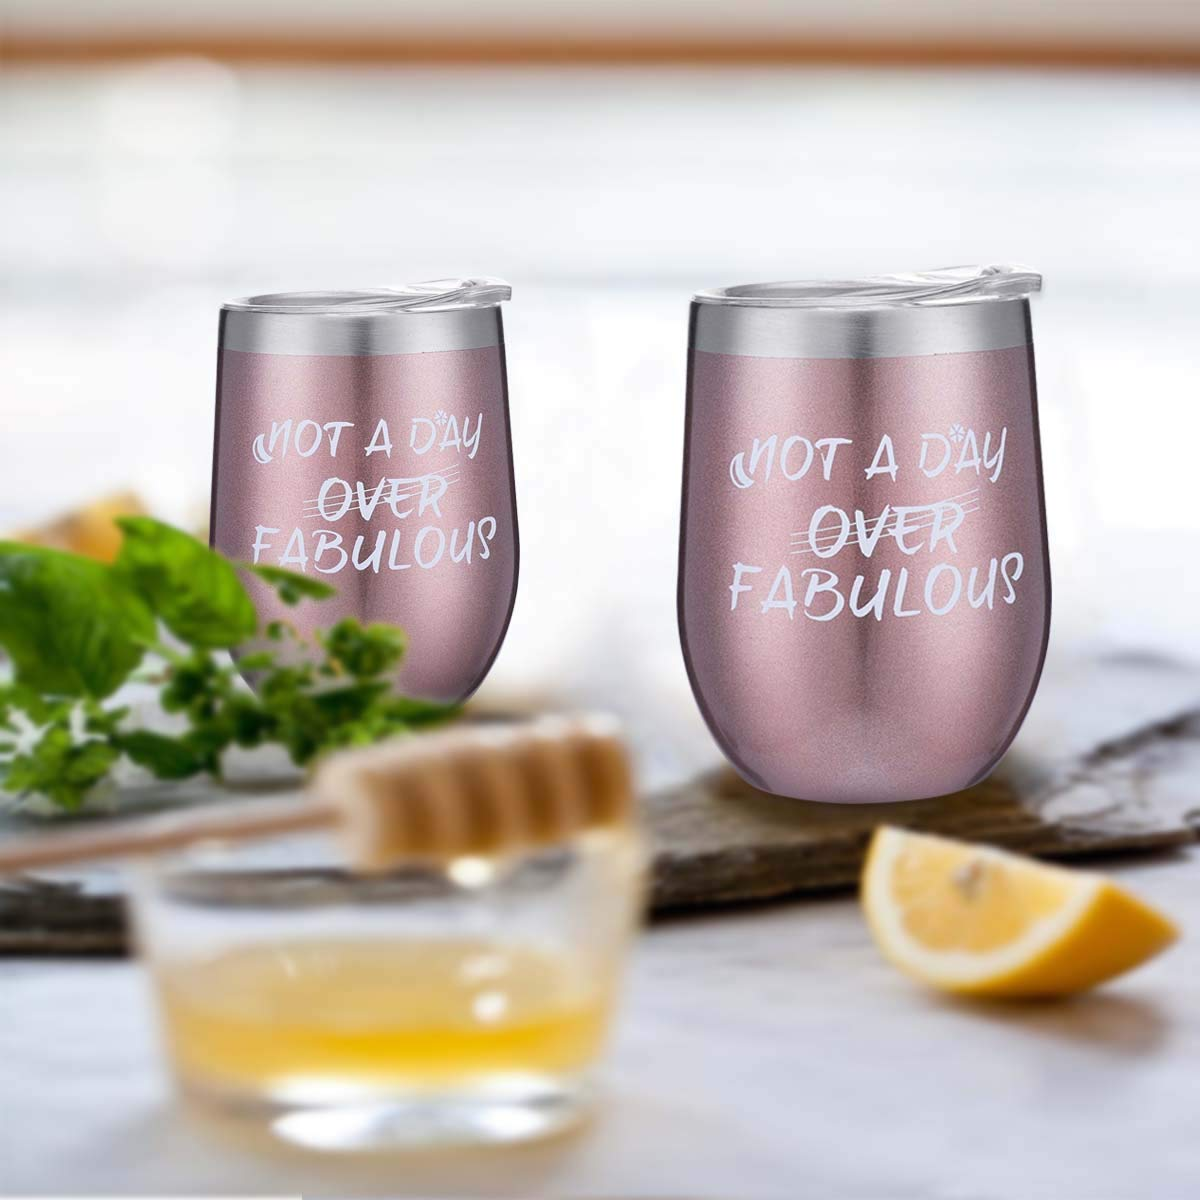 Stainless Steel Wine Tumbler Cupcake Wine Socks Gift Set 12 oz Double Insulated Stemless Wine Glasses with Lid and Sayings Not a Day Over Fabulous Birthday Gifts for Women Friends,Blue